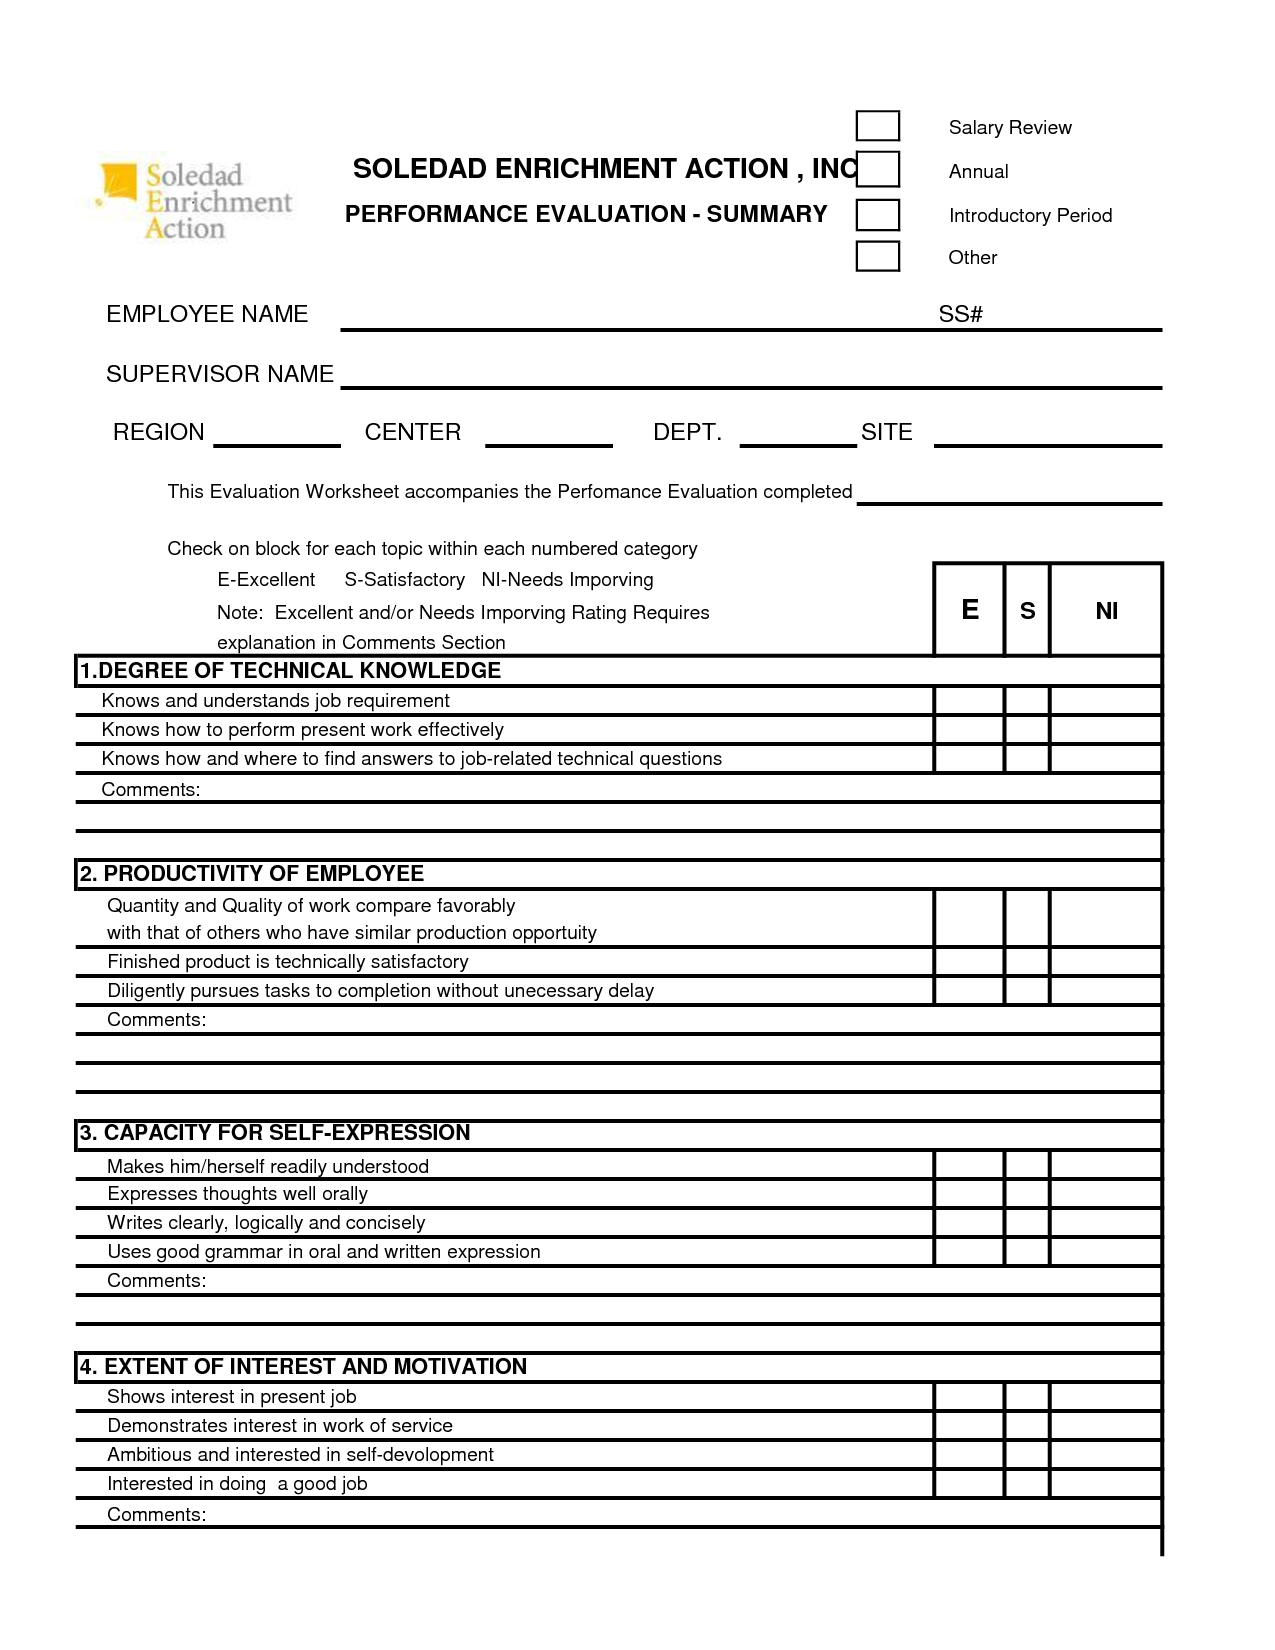 Free 360 Performance Appraisal Form - Google Search | The Career - Free Employee Self Evaluation Forms Printable